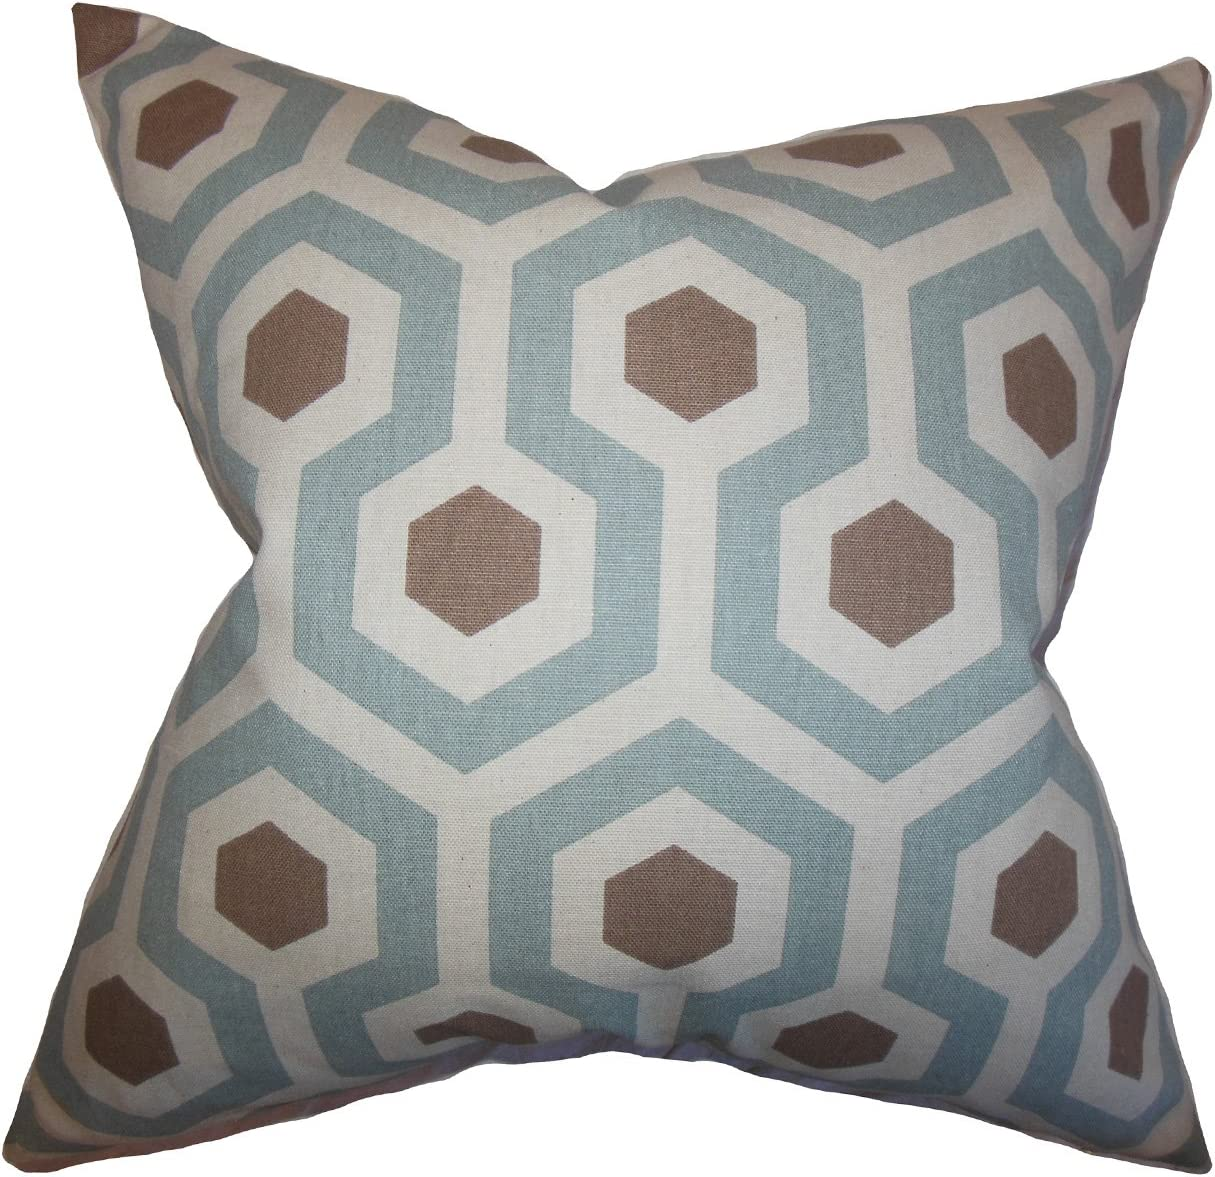 The Pillow Classic Collection Set of 2 Down Maliah 18